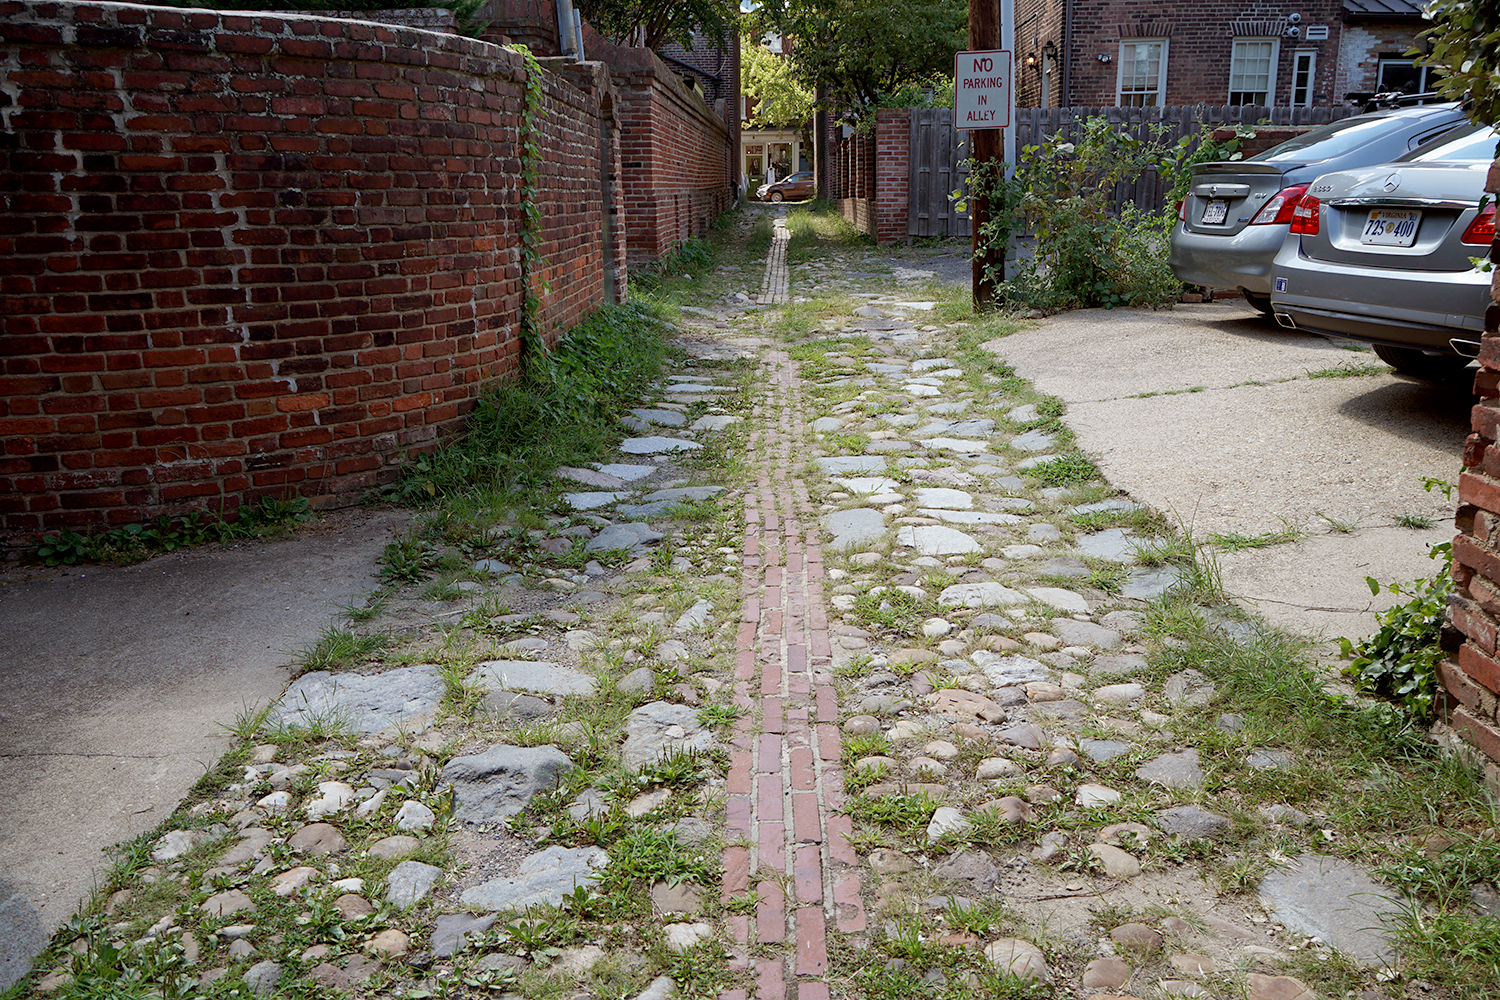 Wales Alley west of Lee St.